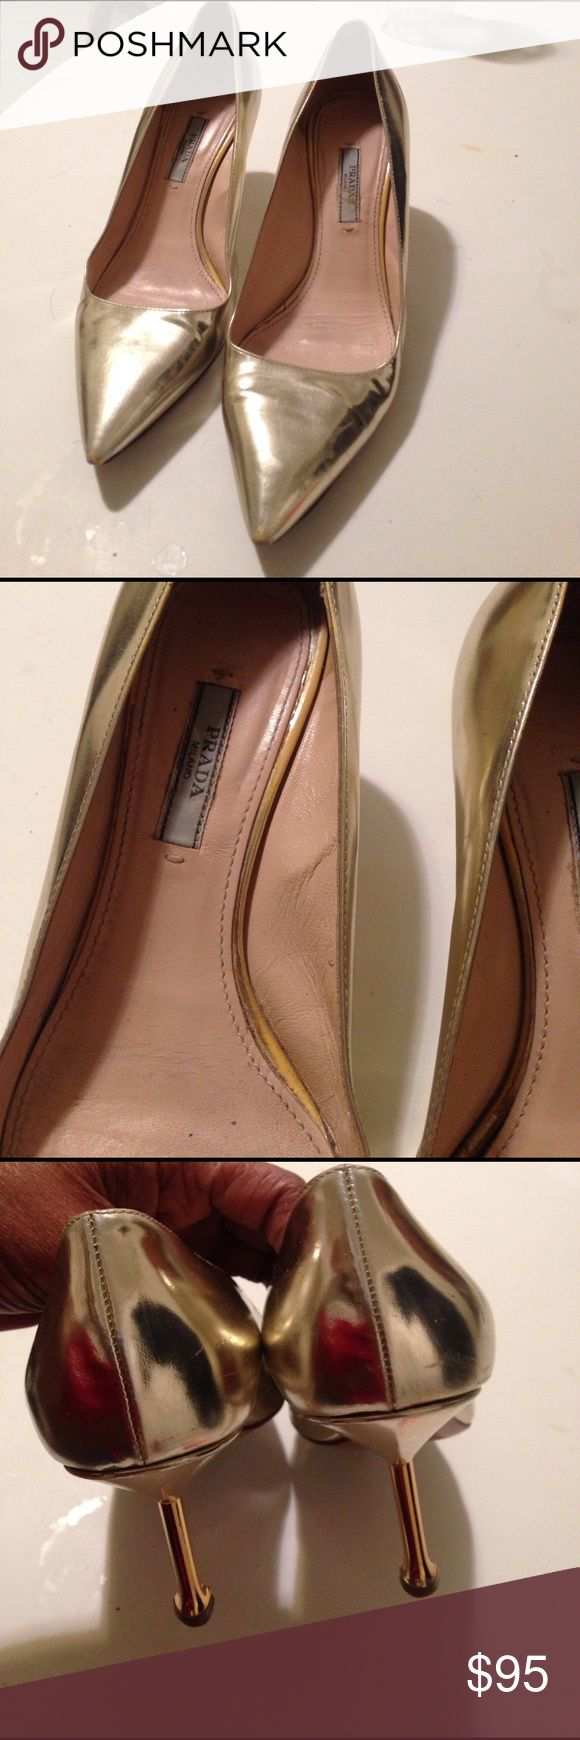 PRADA PUMPS Metallic light gold leather shoes. 2.5' metal plated heels. Leather soles. Signature name on soles. Minor scratches. Wear on toe area. Very stylish sexy & comfy Prada Shoes Heels